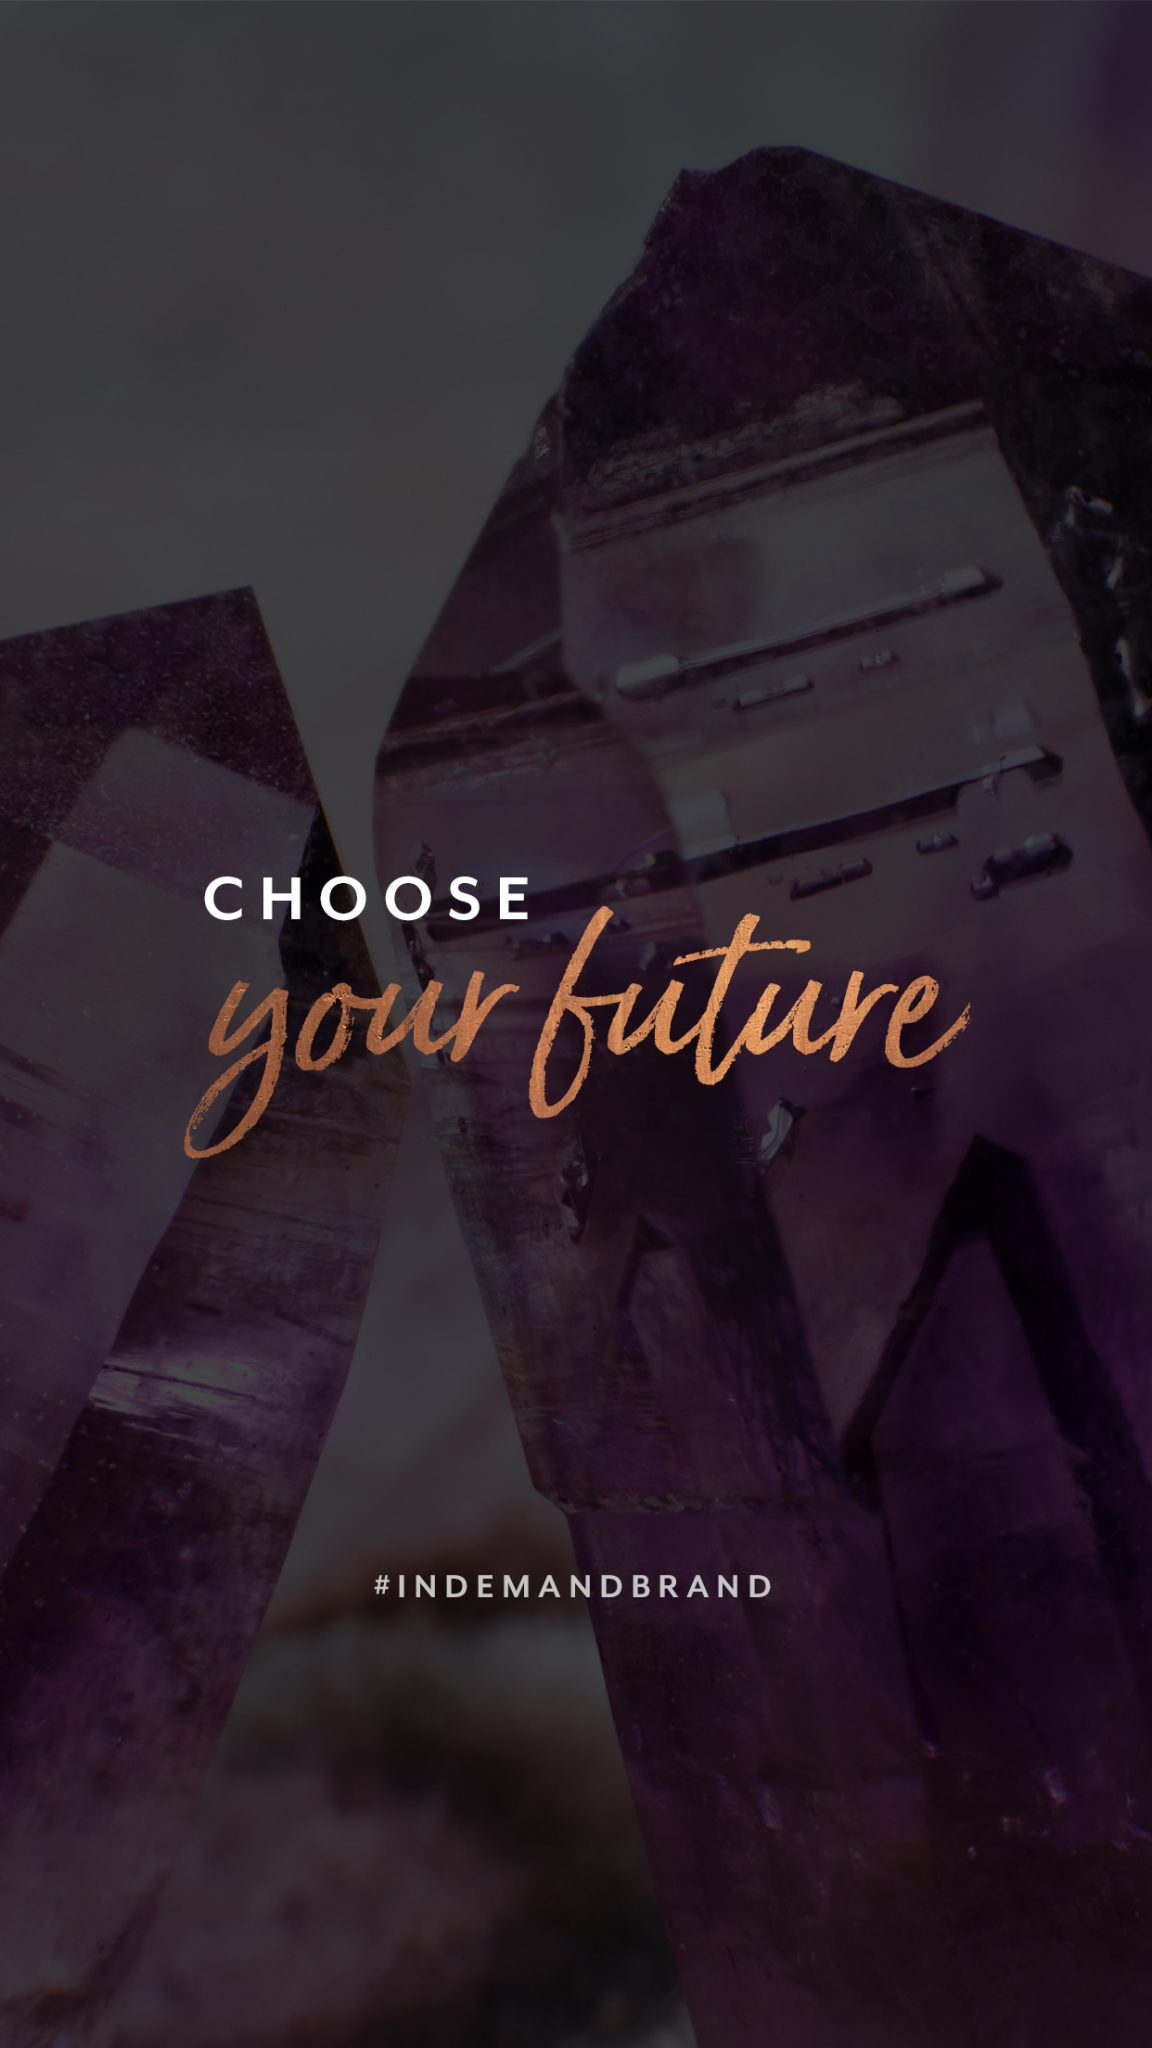 Choose your future. #InDemandBrand